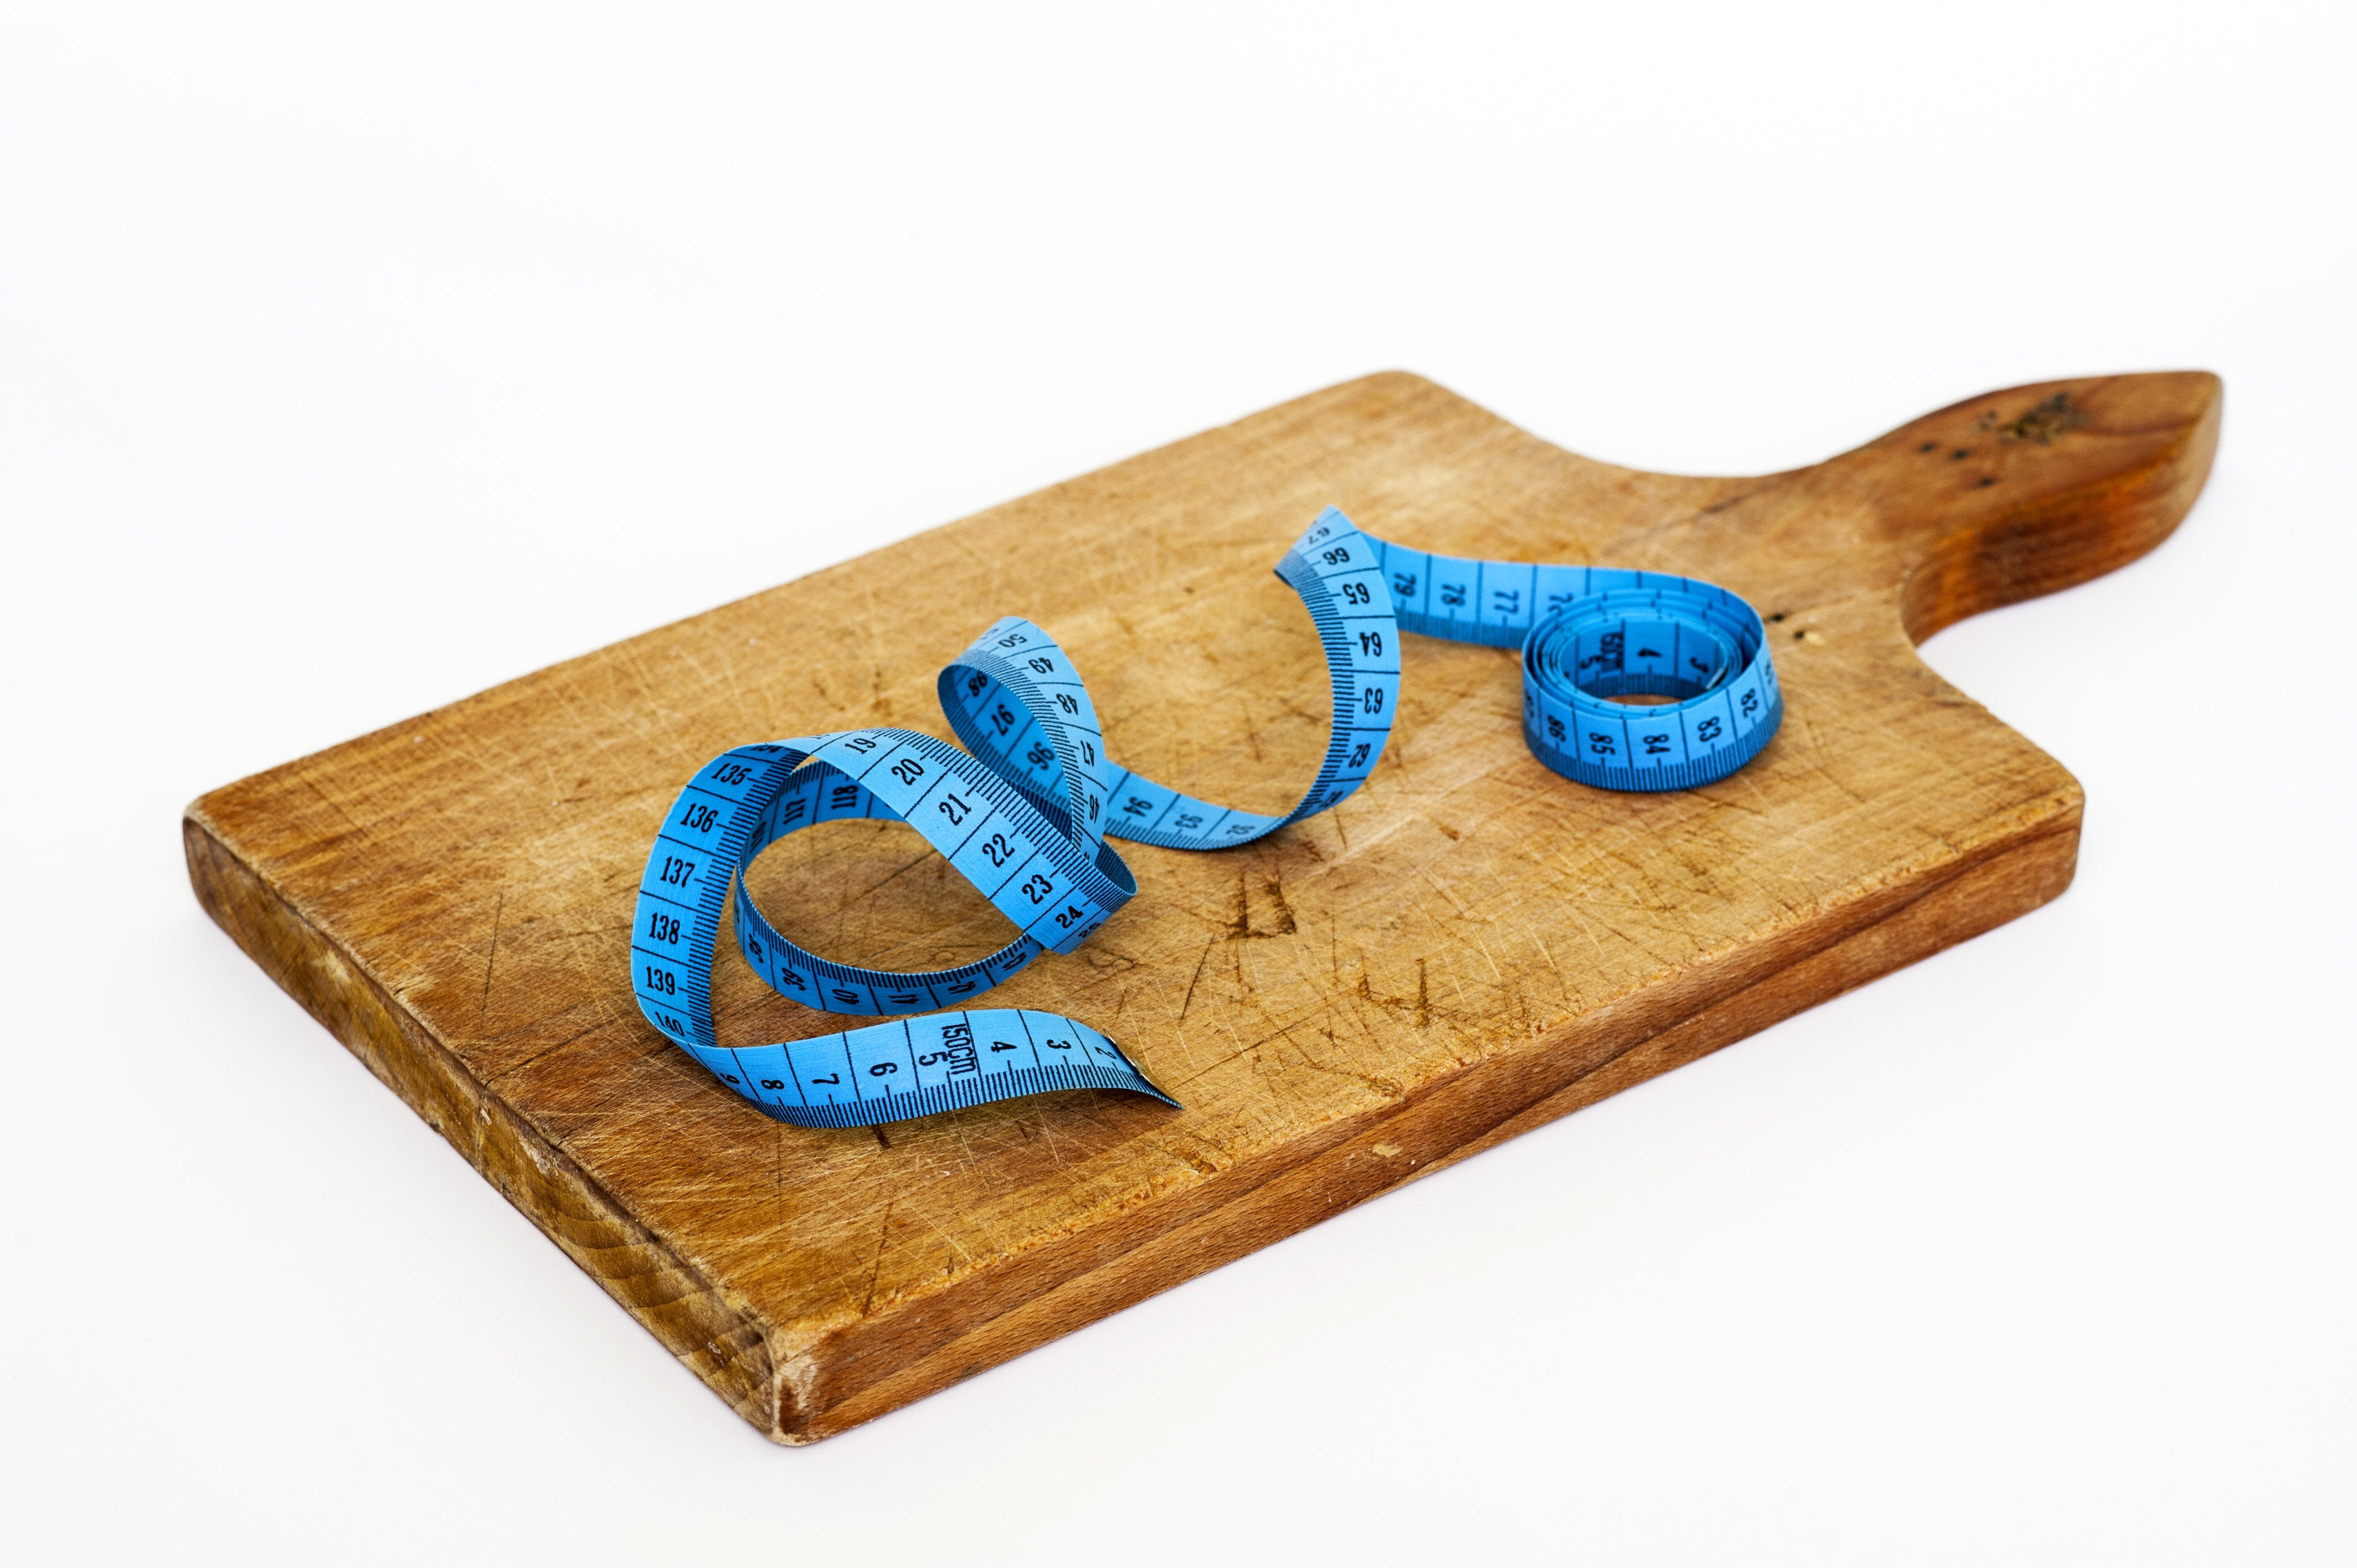 Blue Measuring Tape on Brown Wooden Chopping Board